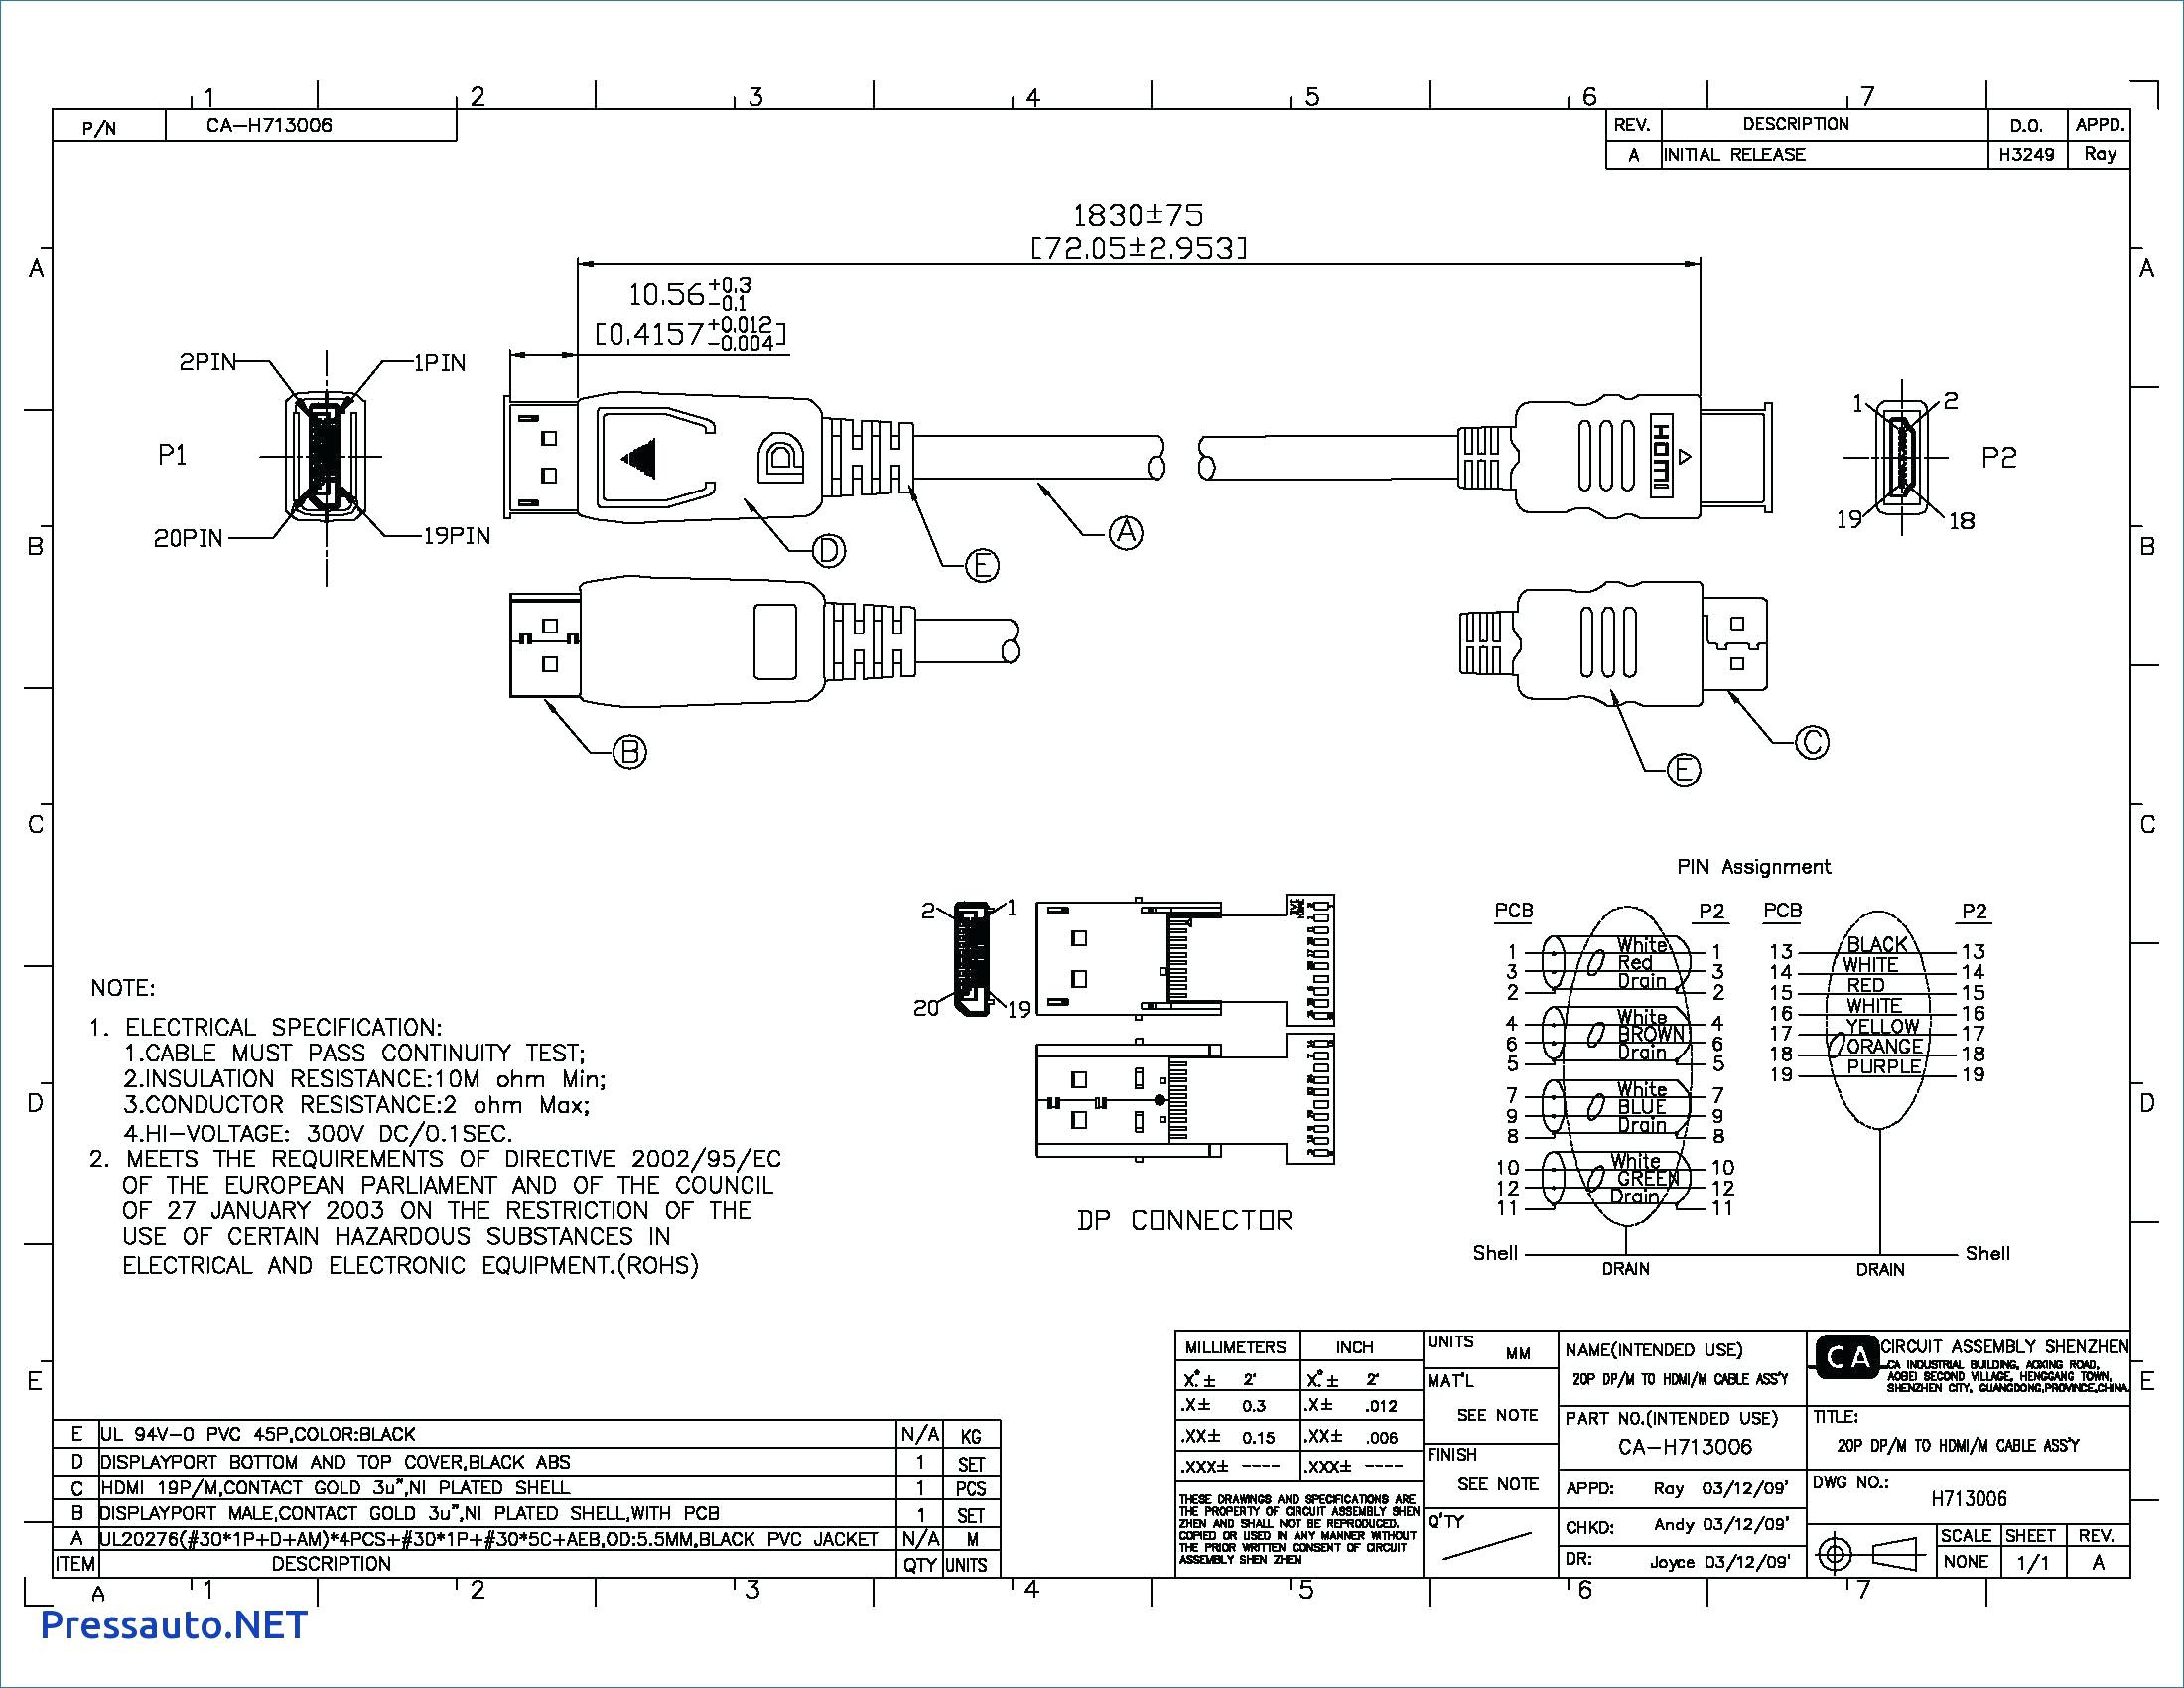 bunker hill security camera 91851 wiring diagram Collection-Harbor Freight Security Camera Wiring Diagram Awesome Delighted Bunker Hill Security Item Wiring Diagram Ideas the 4-c